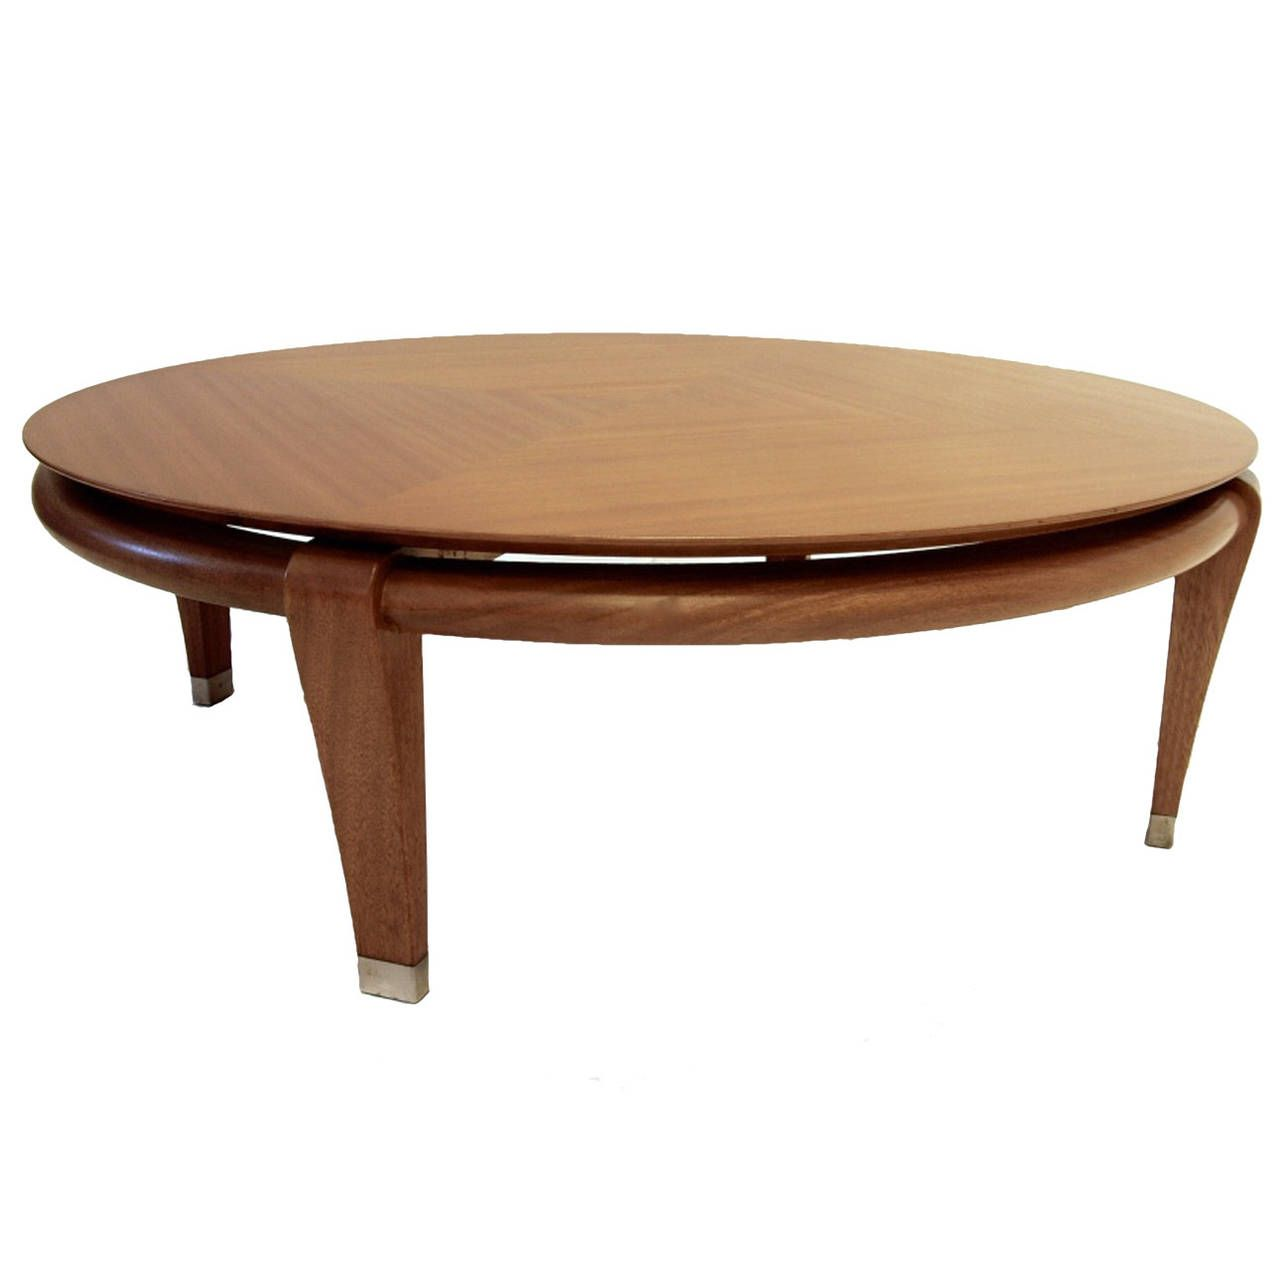 Paul Laszlo for Brown Saltman Round Coffee Table in Mahogany Model 145